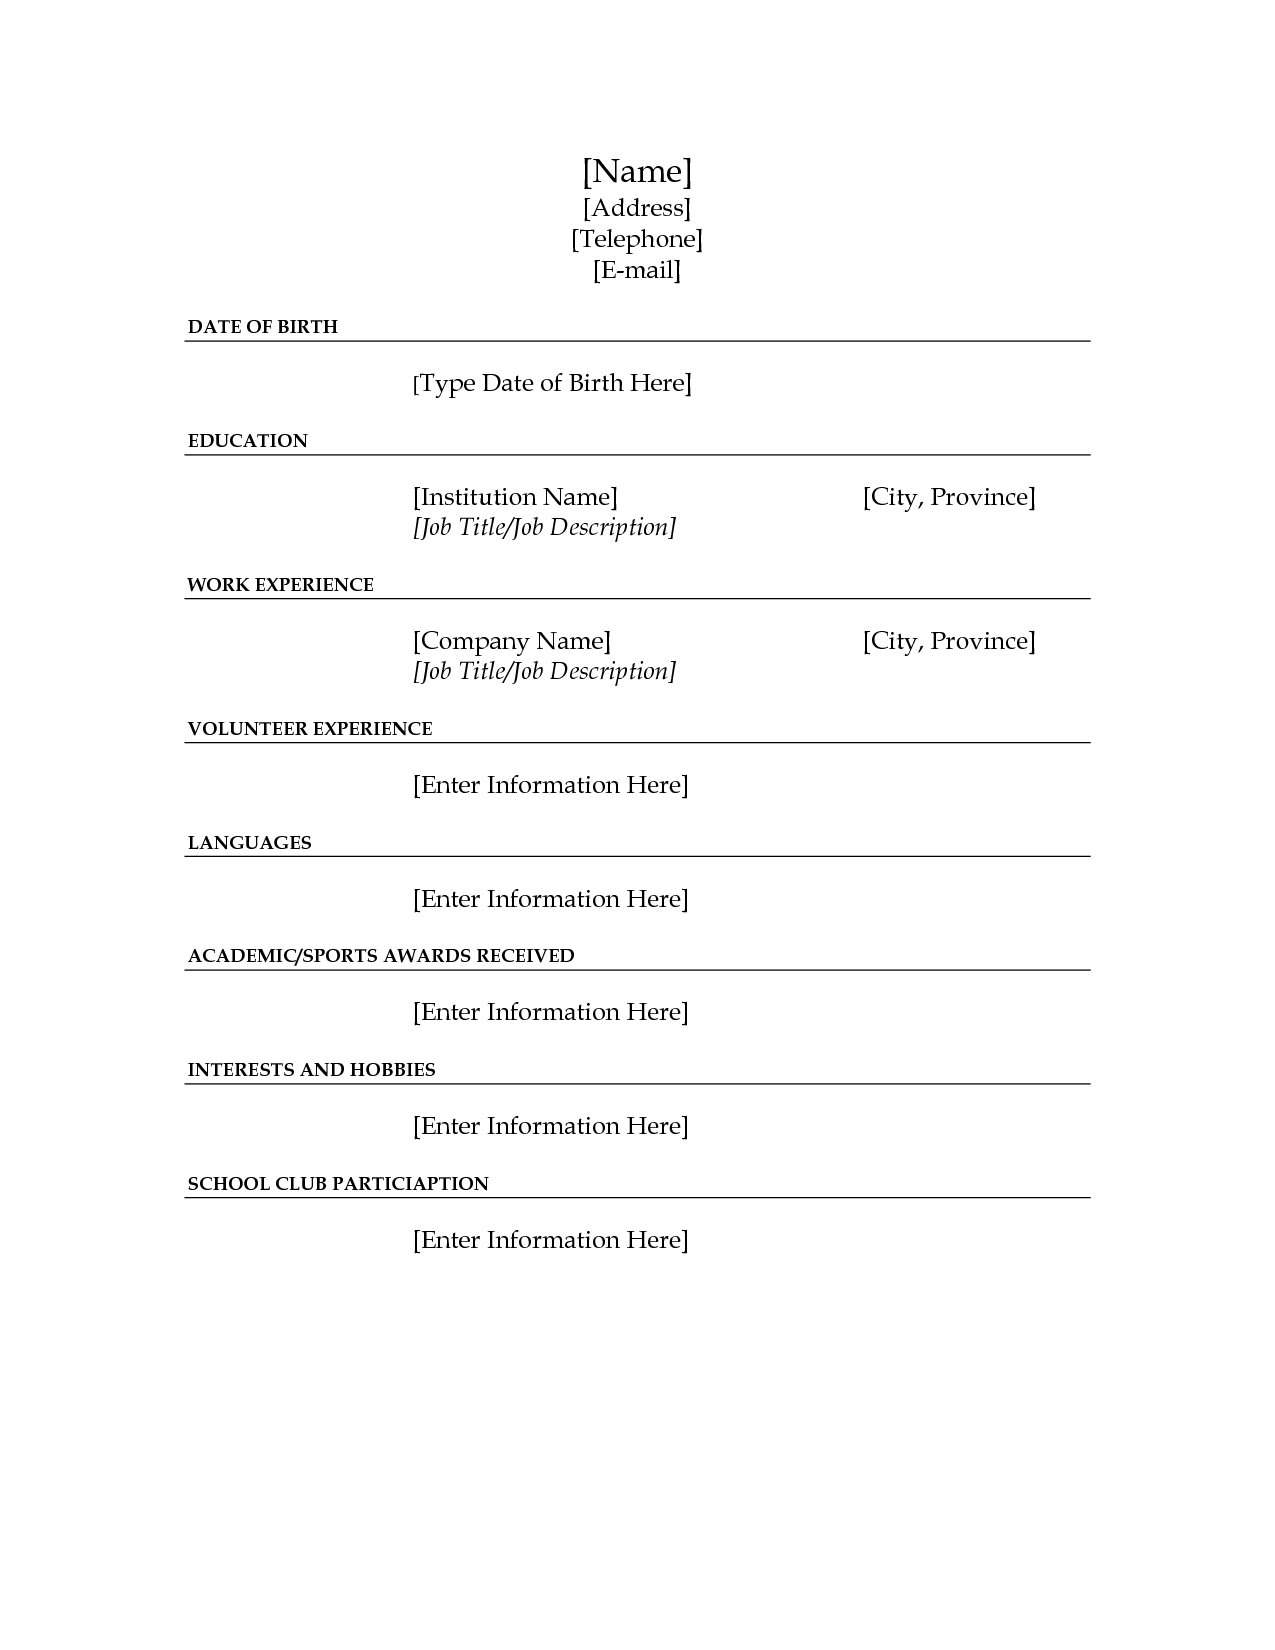 Free Fill In The Blank Resume Http Www Resumecareer Info Free